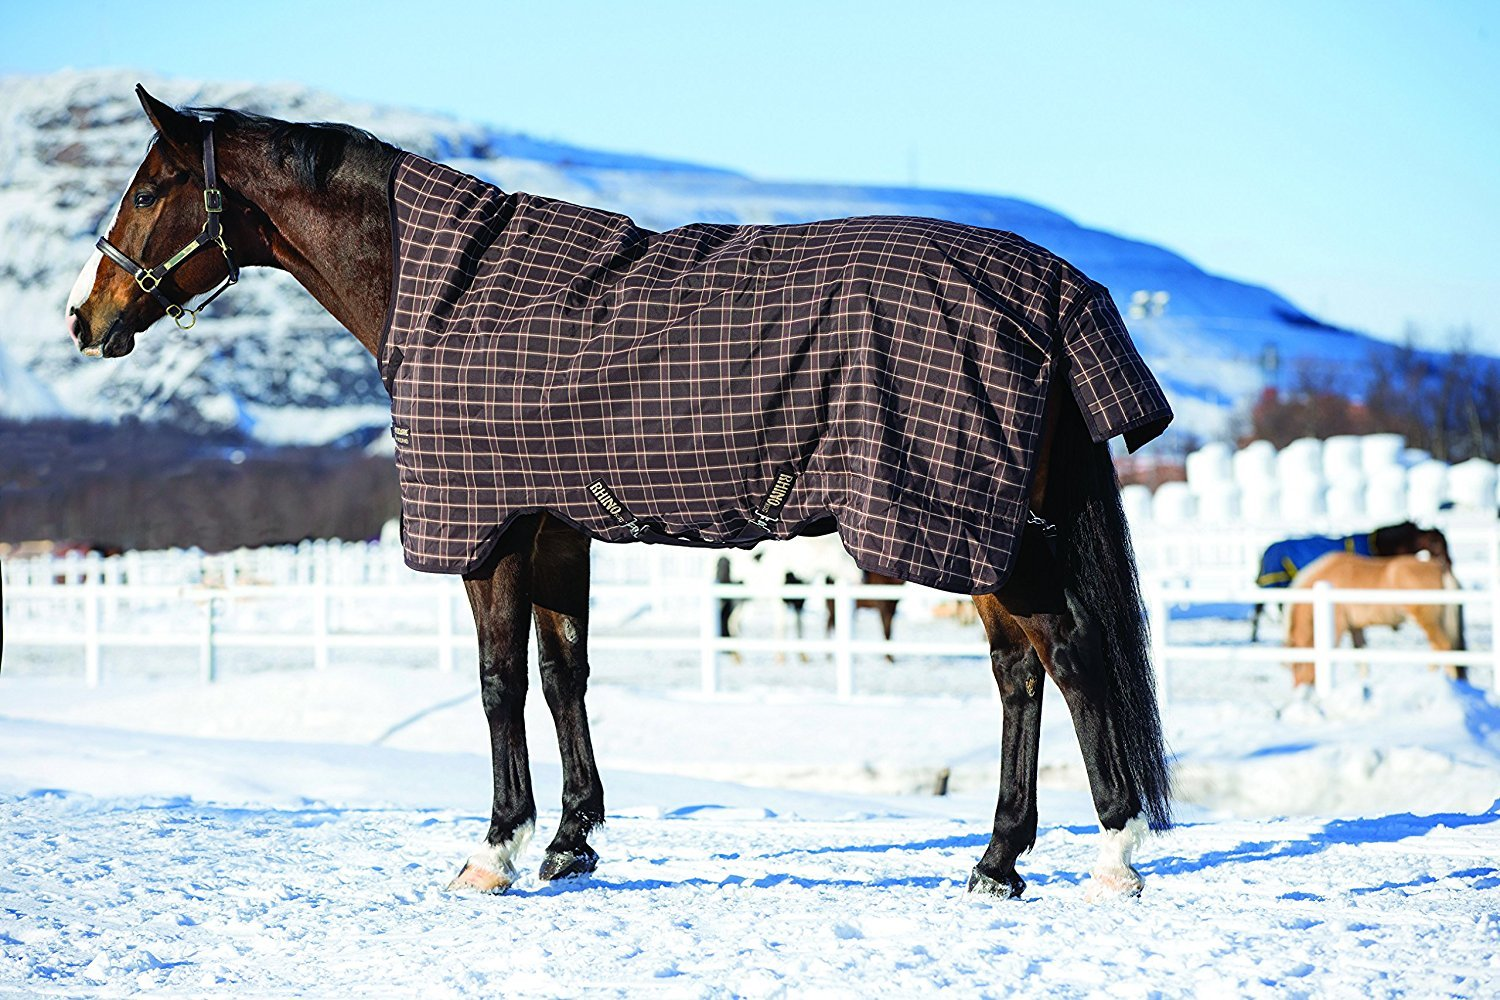 Chocolate with cream check with chocolate & cream 115 chocolate with cream check with chocolate & cream 115 Horseware Rhino Wug 0g Lightweight Turnout Rug